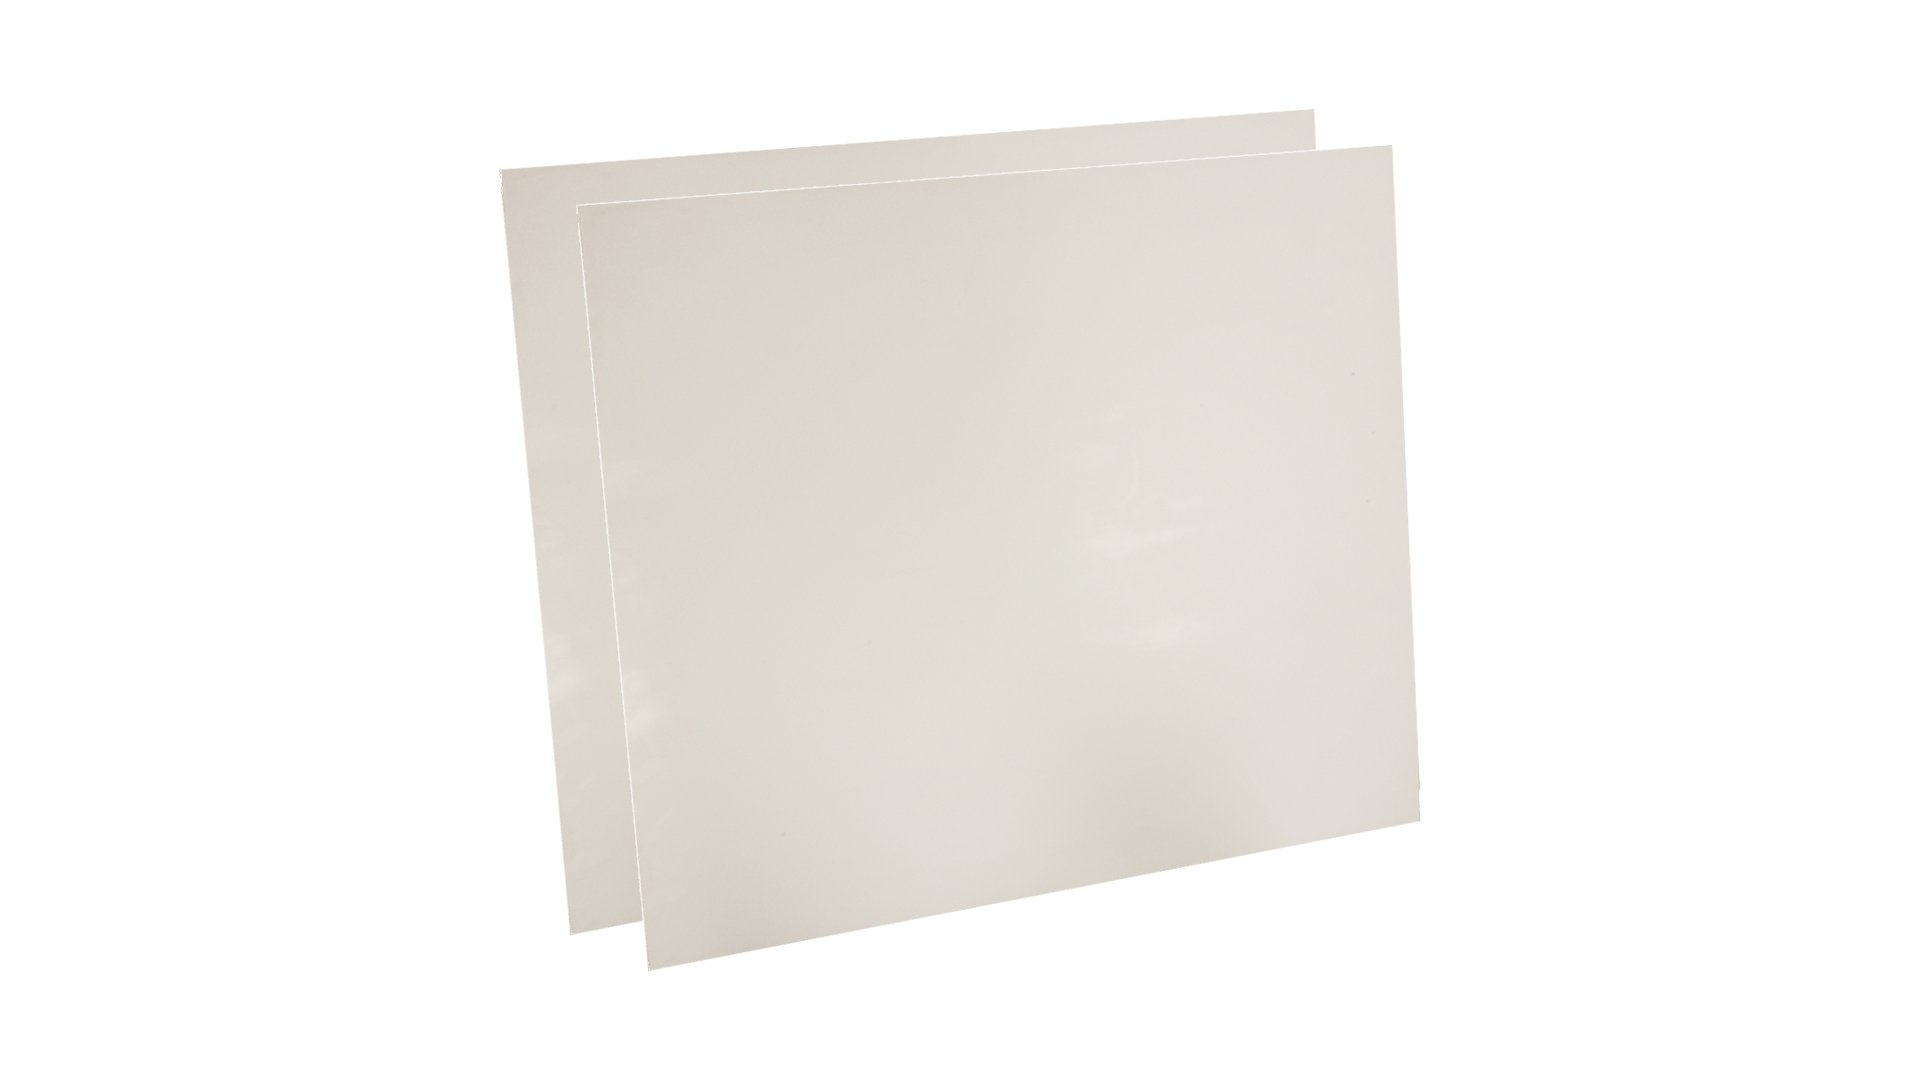 Sterling Seal 7530.5012x12x2 7530 Virgin Teflon Sheet, 1/2'' Thick, 12'' x 12'' (Pack of 2)